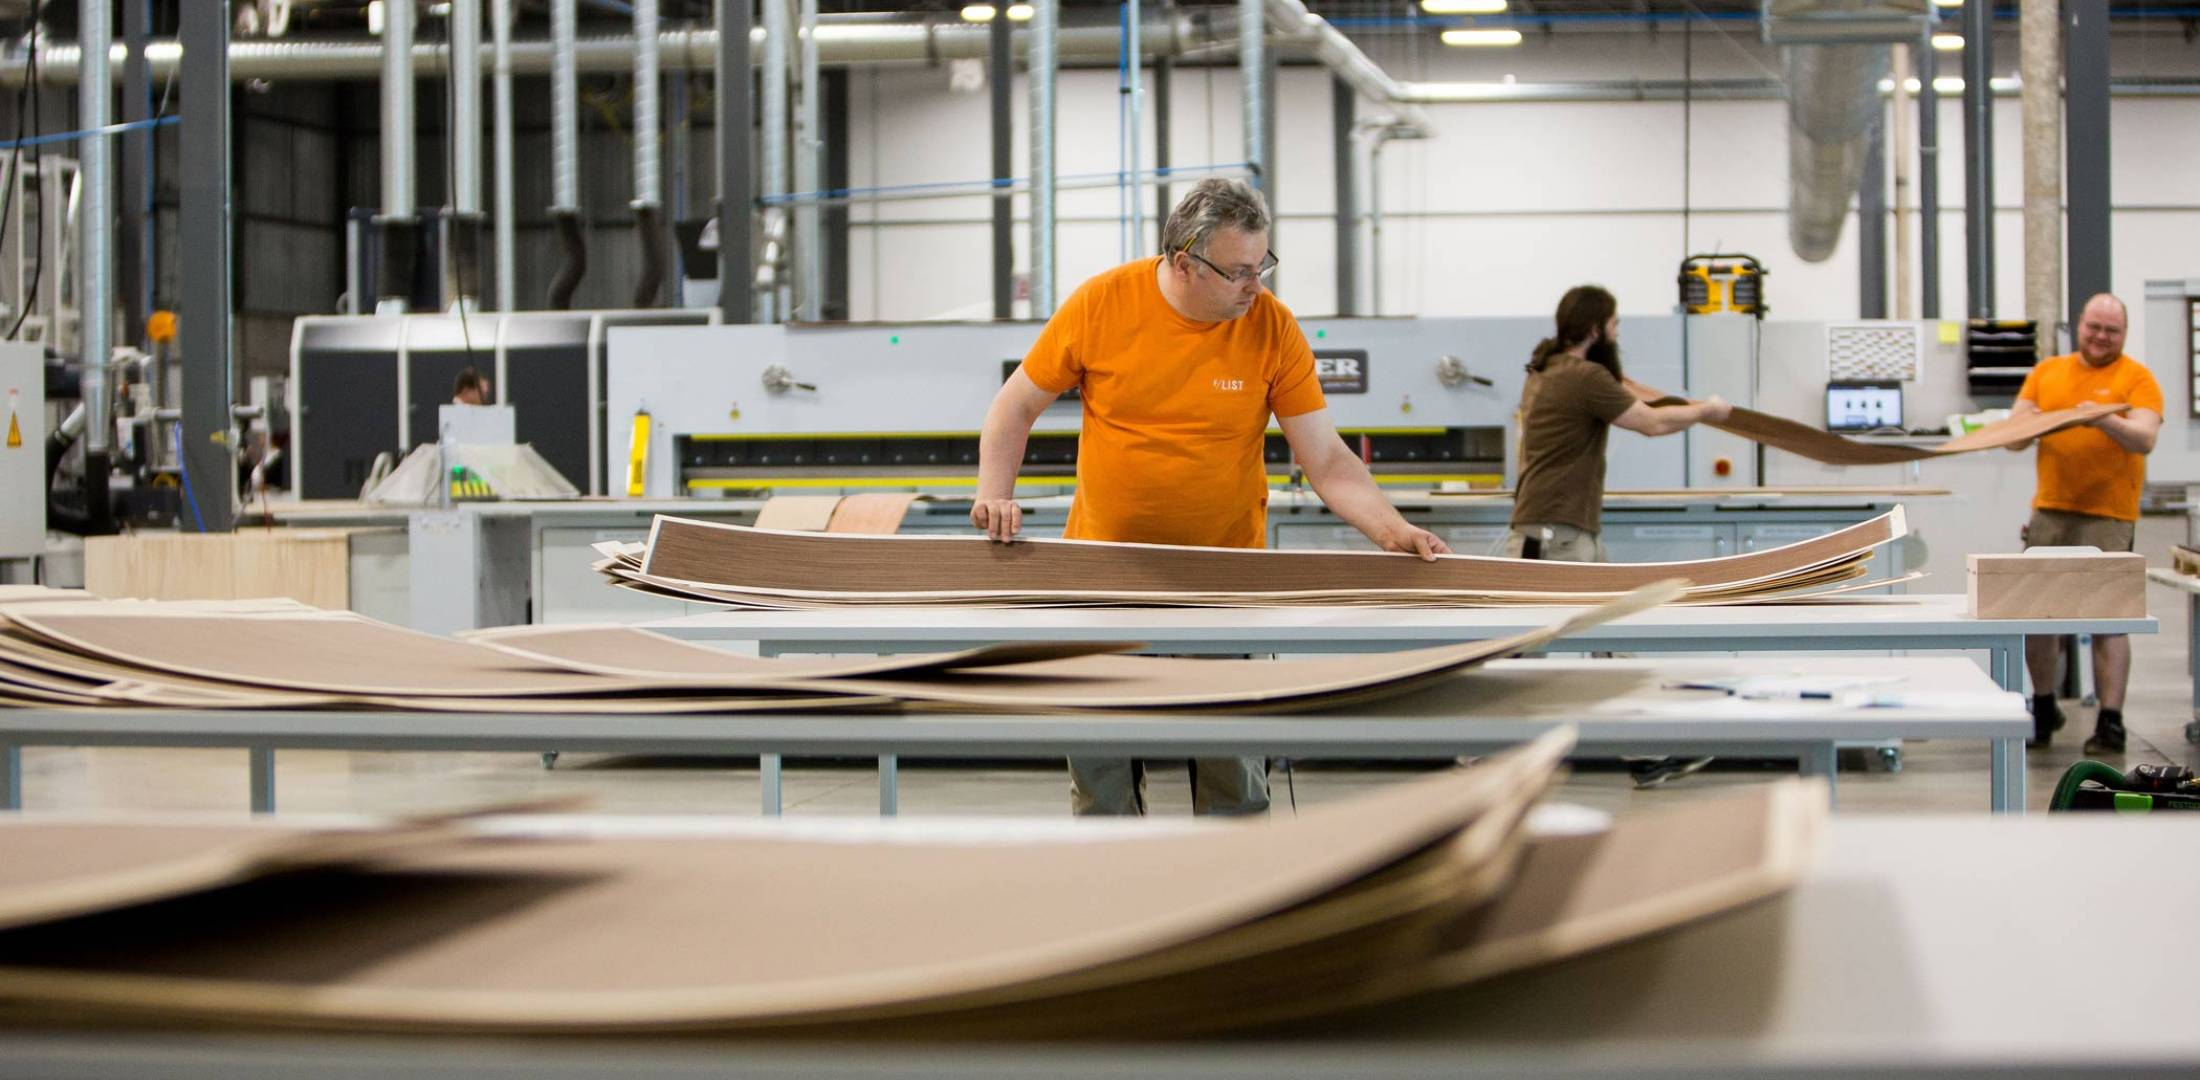 With its specialty in flame-retardant wood veneers, Austria's F/List also focuses on refurbishment services and cabin interior production. The company recently opened F/List Canada, expanding its market reach across the Atlantic to better serve the growing North American market.